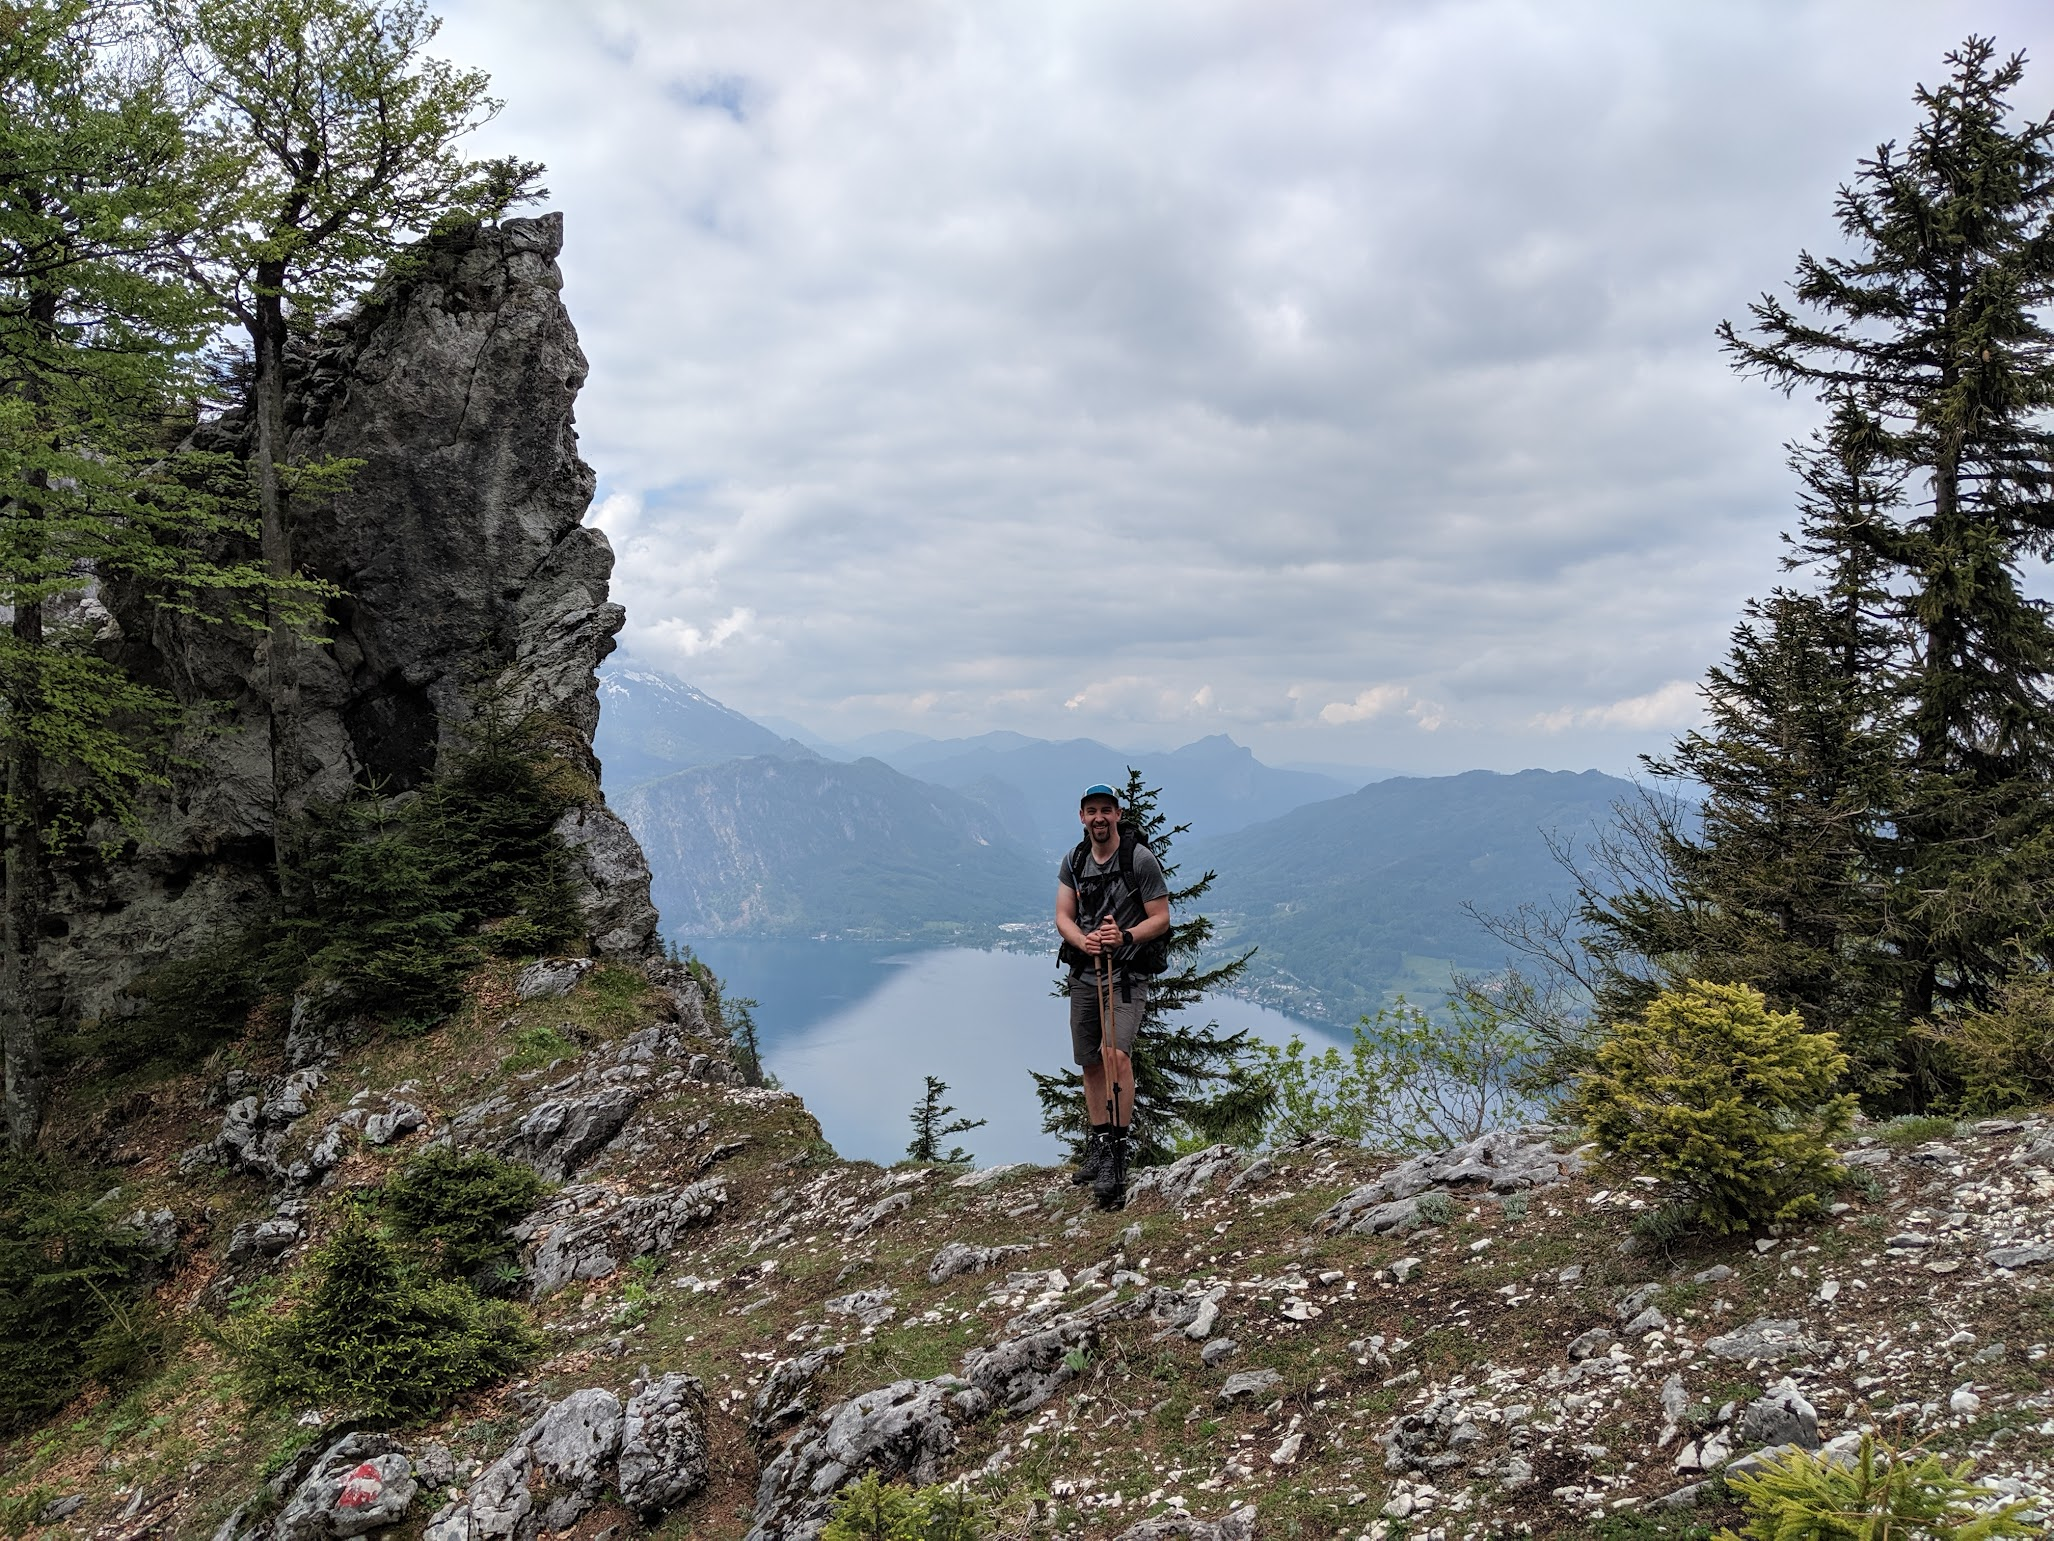 Feuerkogel weekend hike - May 19